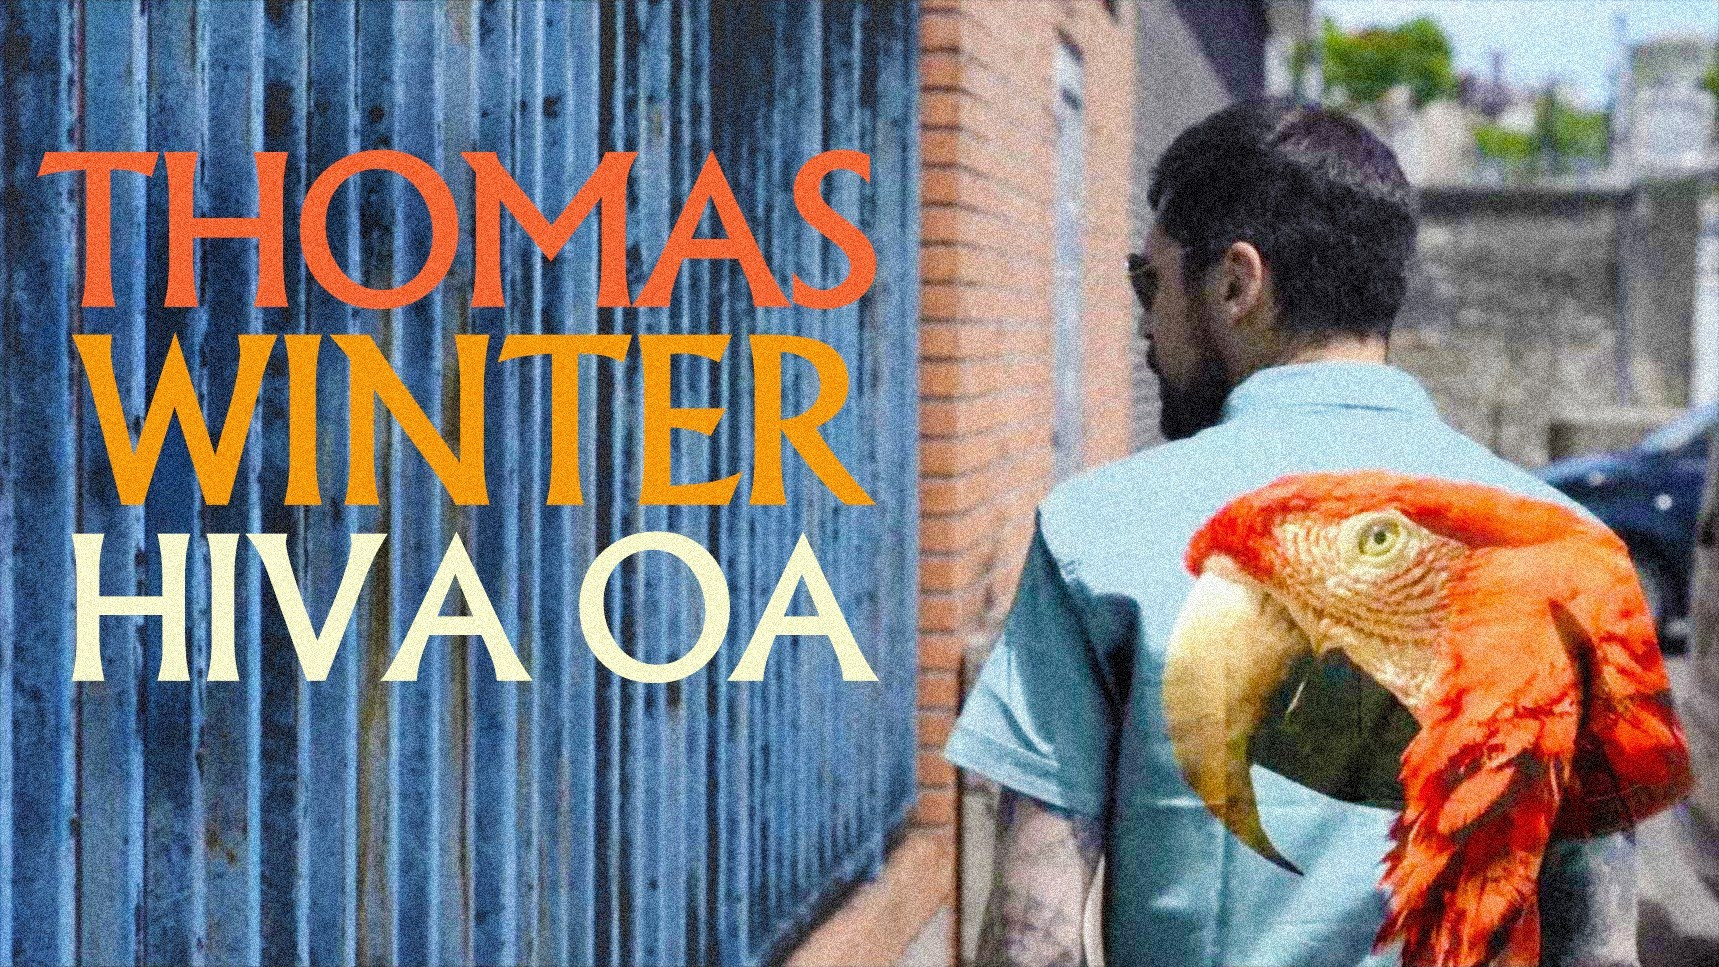 Thomas Winter - Hiva Oa